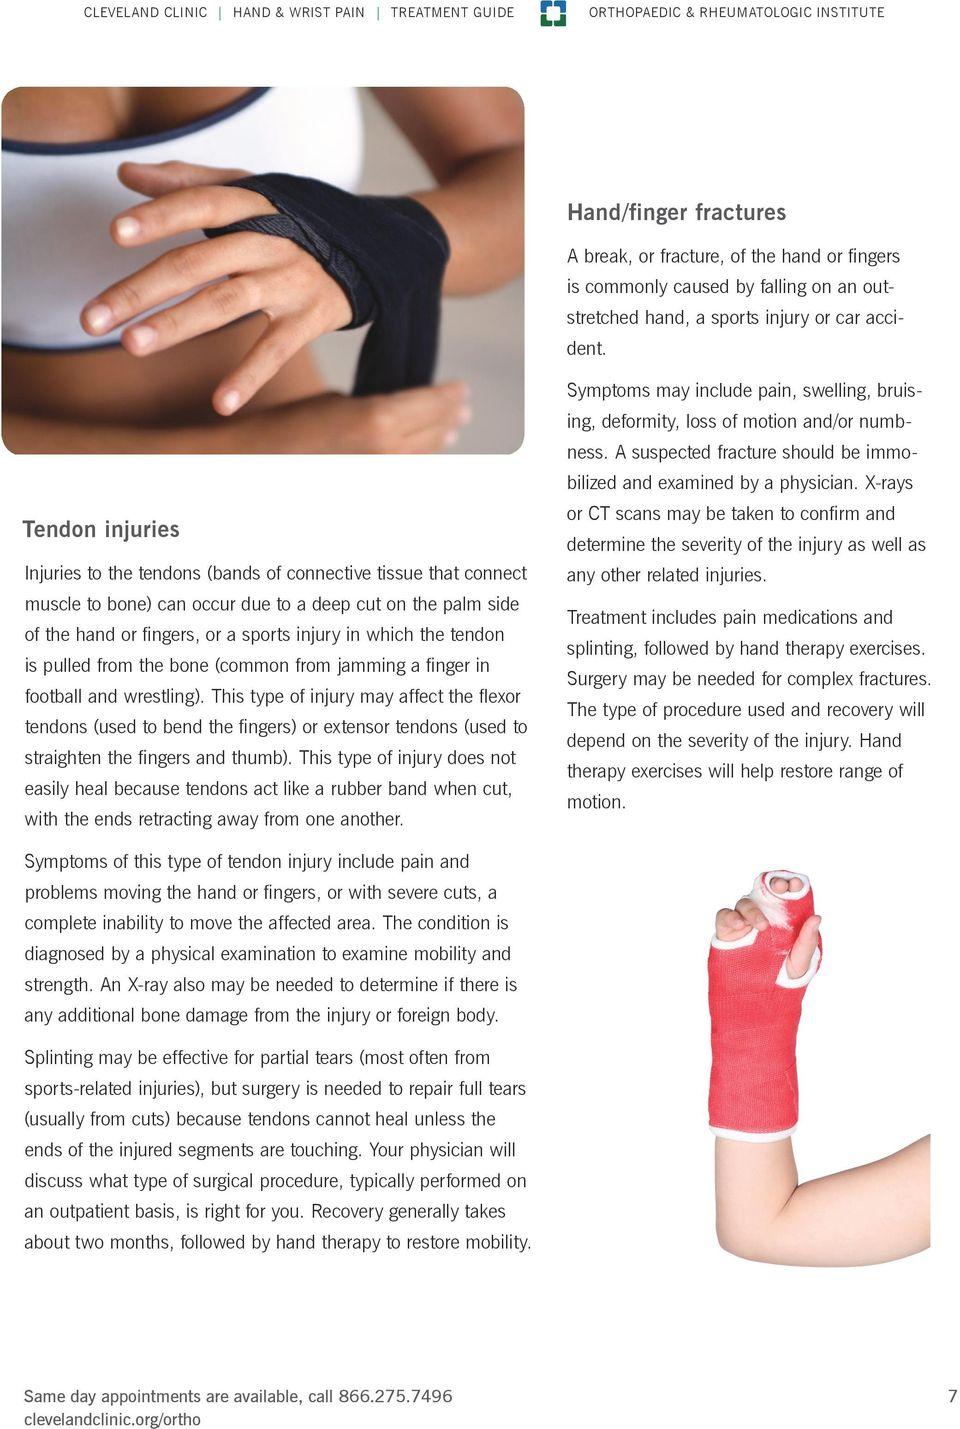 Tendon injuries Injuries to the tendons (bands of connective tissue that connect muscle to bone) can occur due to a deep cut on the palm side of the hand or fingers, or a sports injury in which the